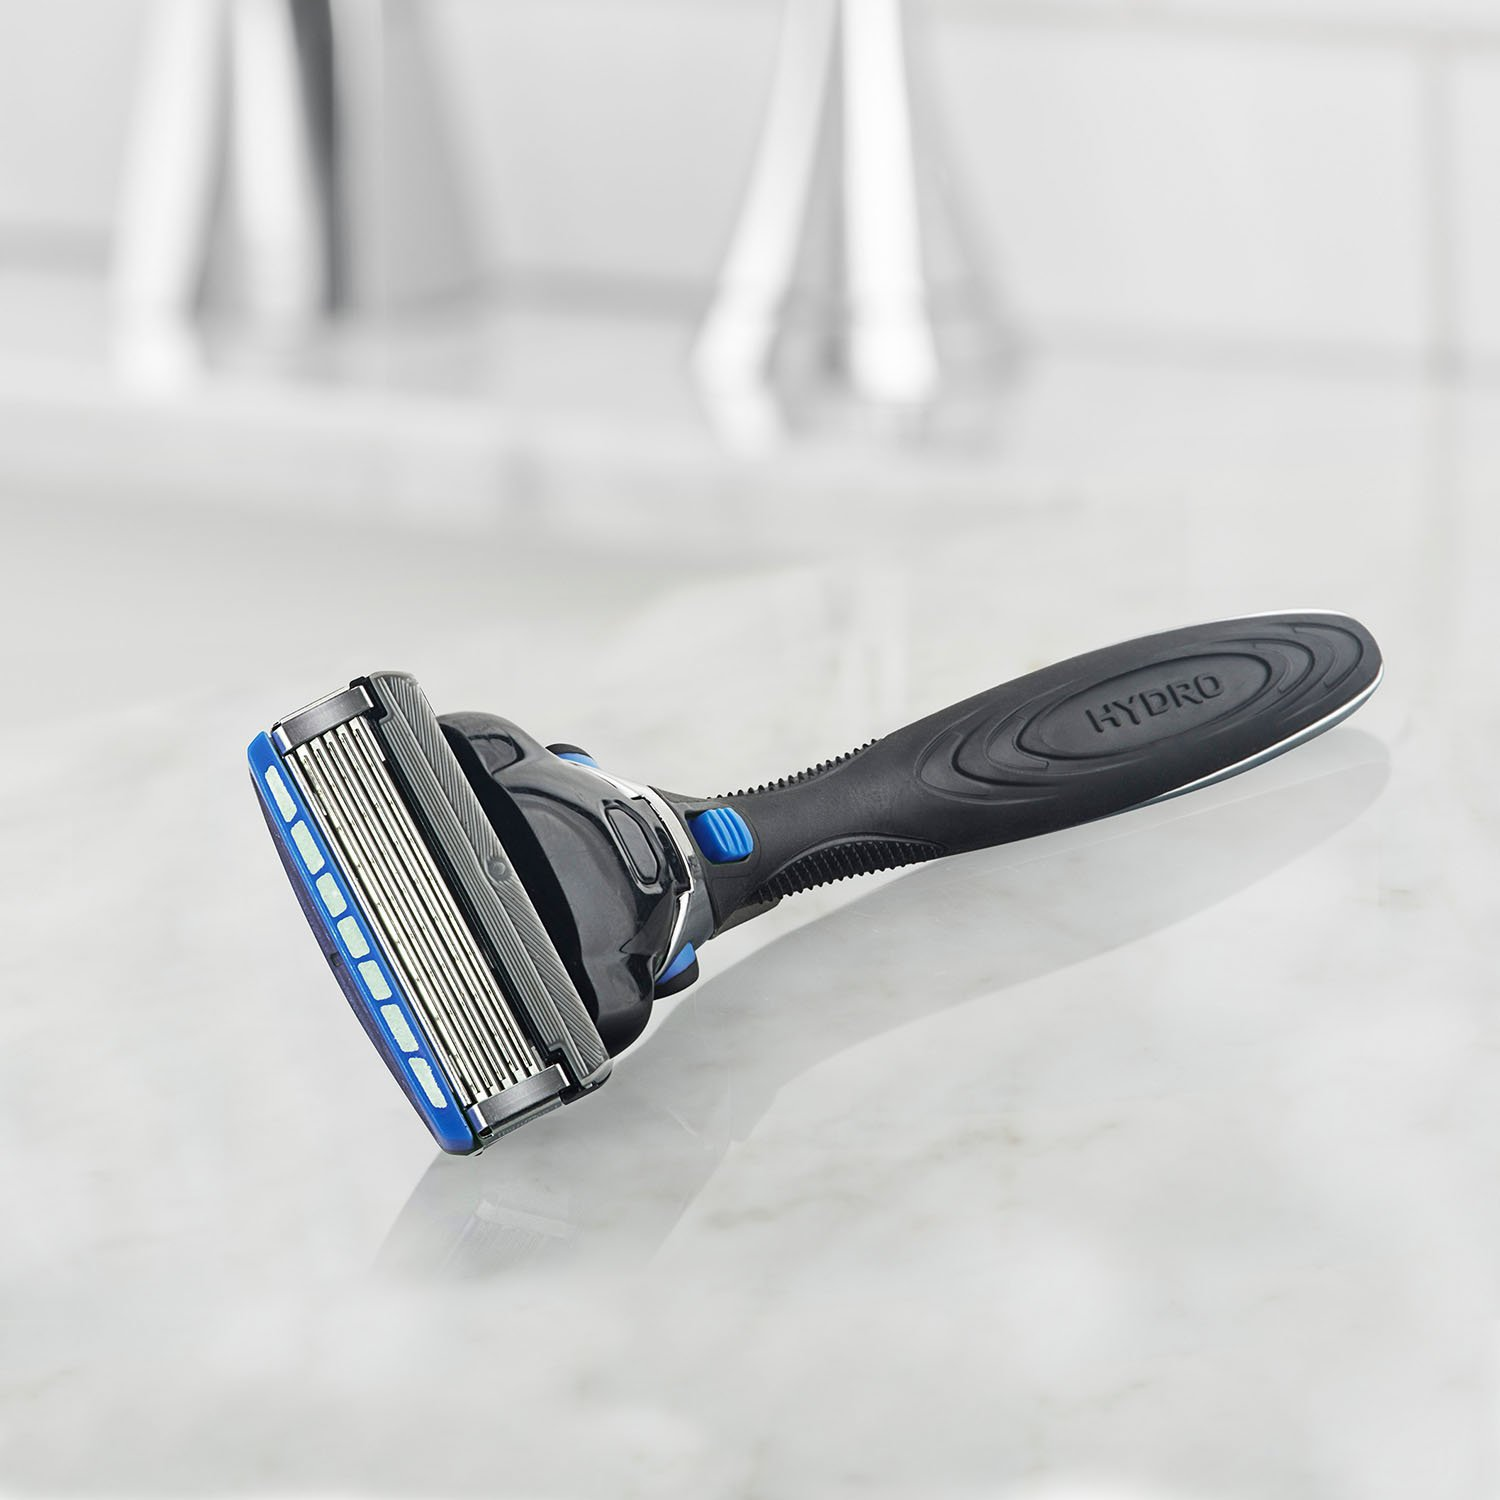 Best Razor for Sensitive Skin 7